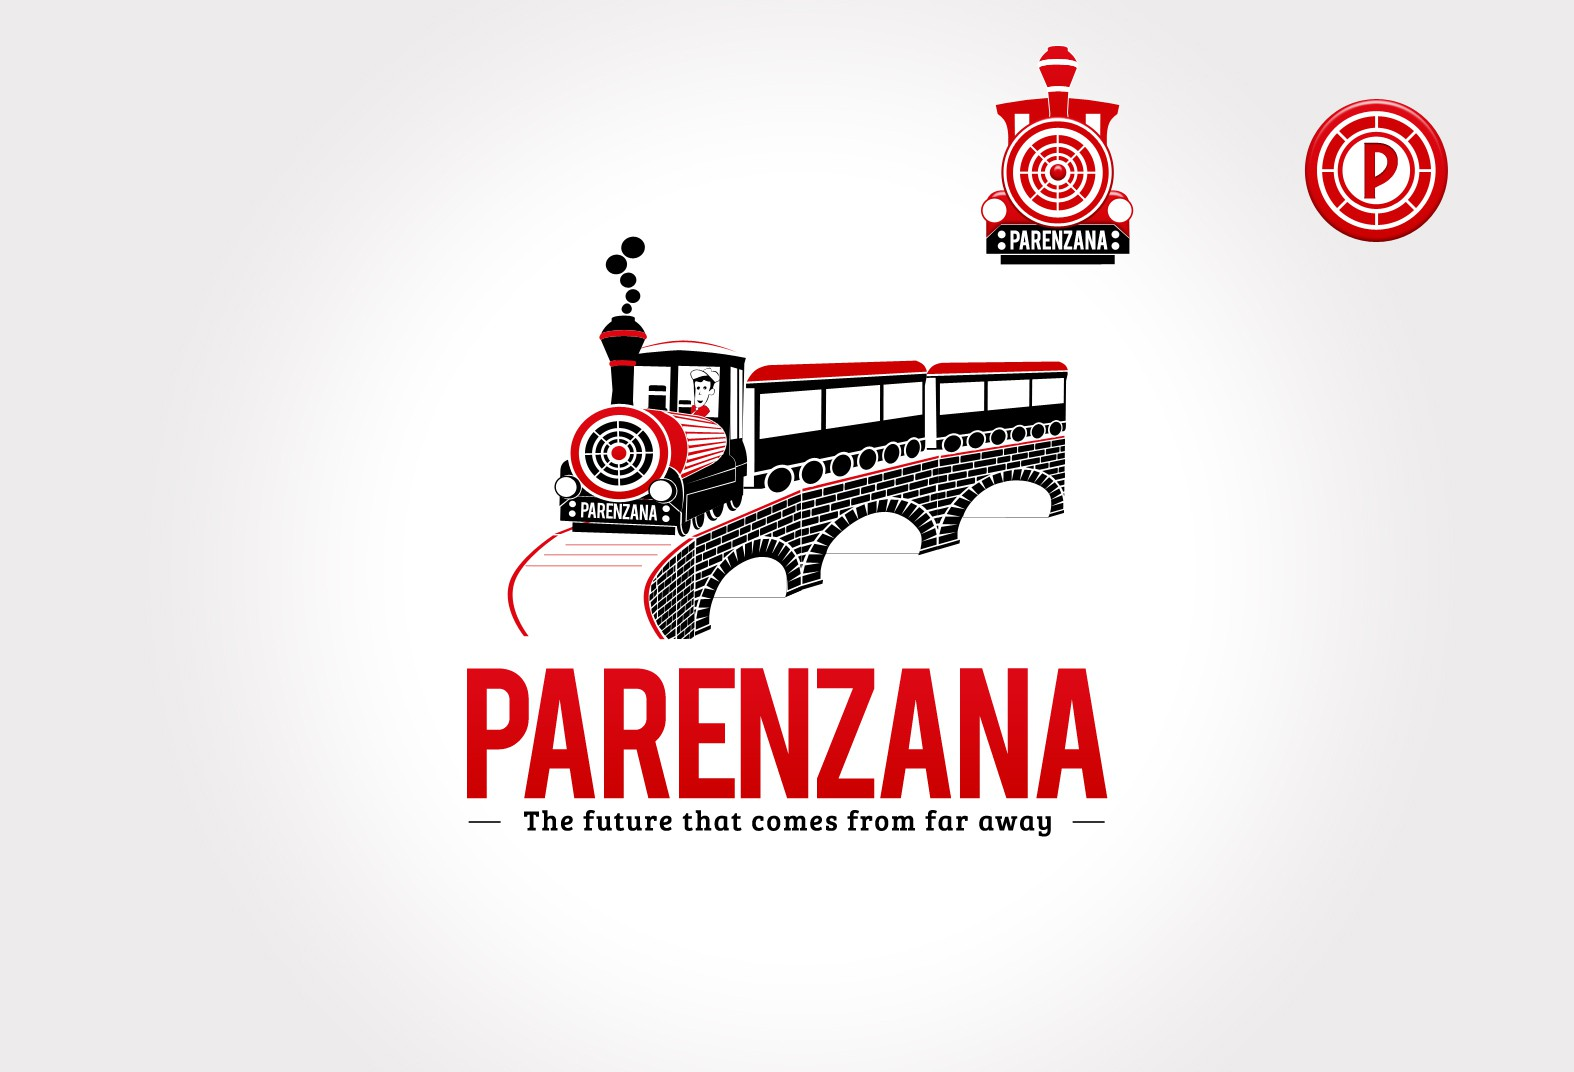 Create a logo for the project Parenzana Train-The future that comes from far away!